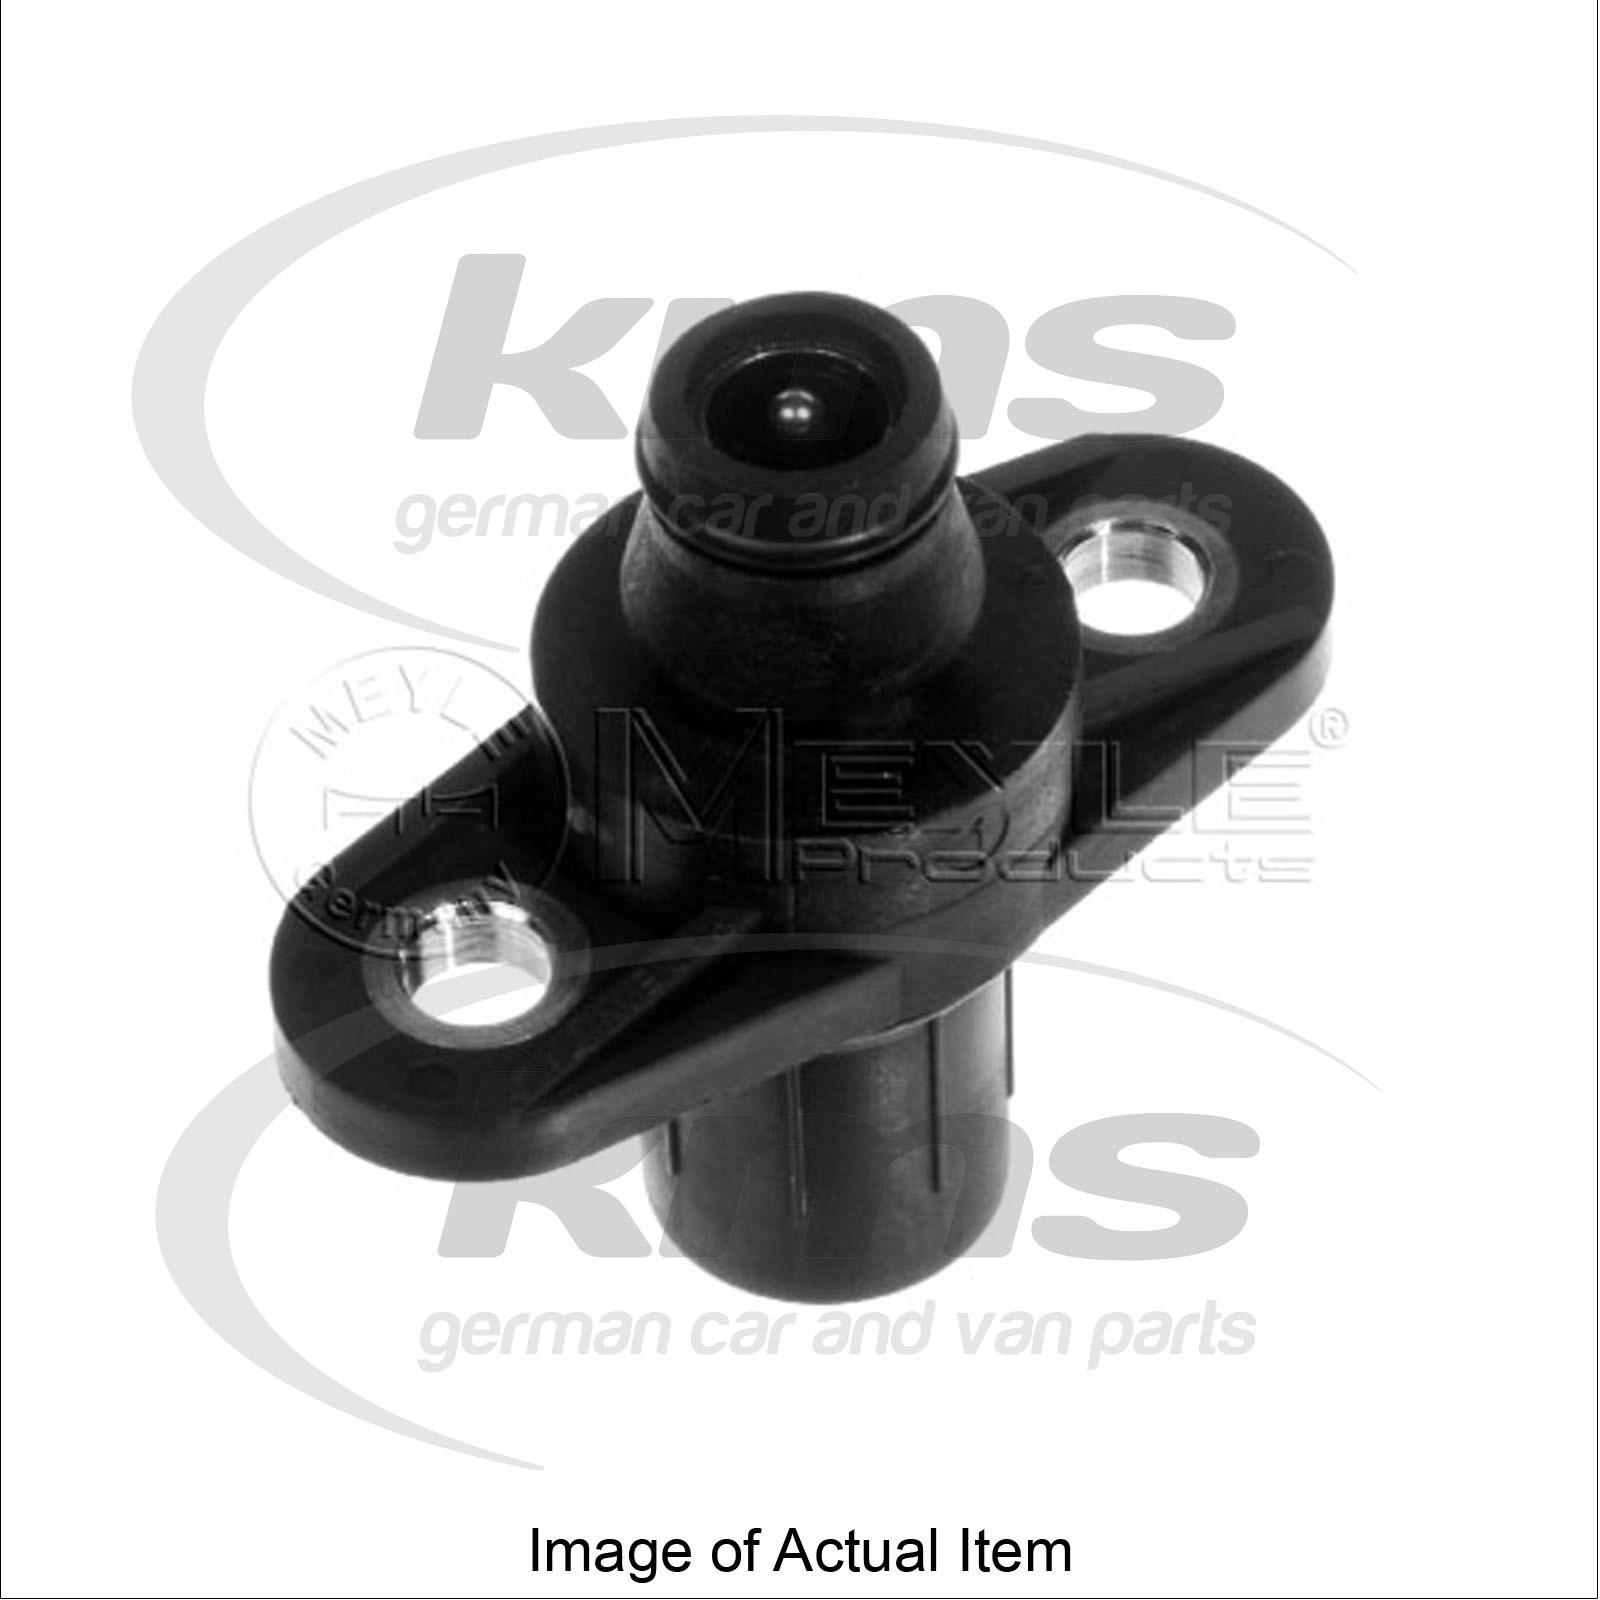 SENSOR For CAMSHAFT POSITION MERCEDES S-CLASS Coupe (C140